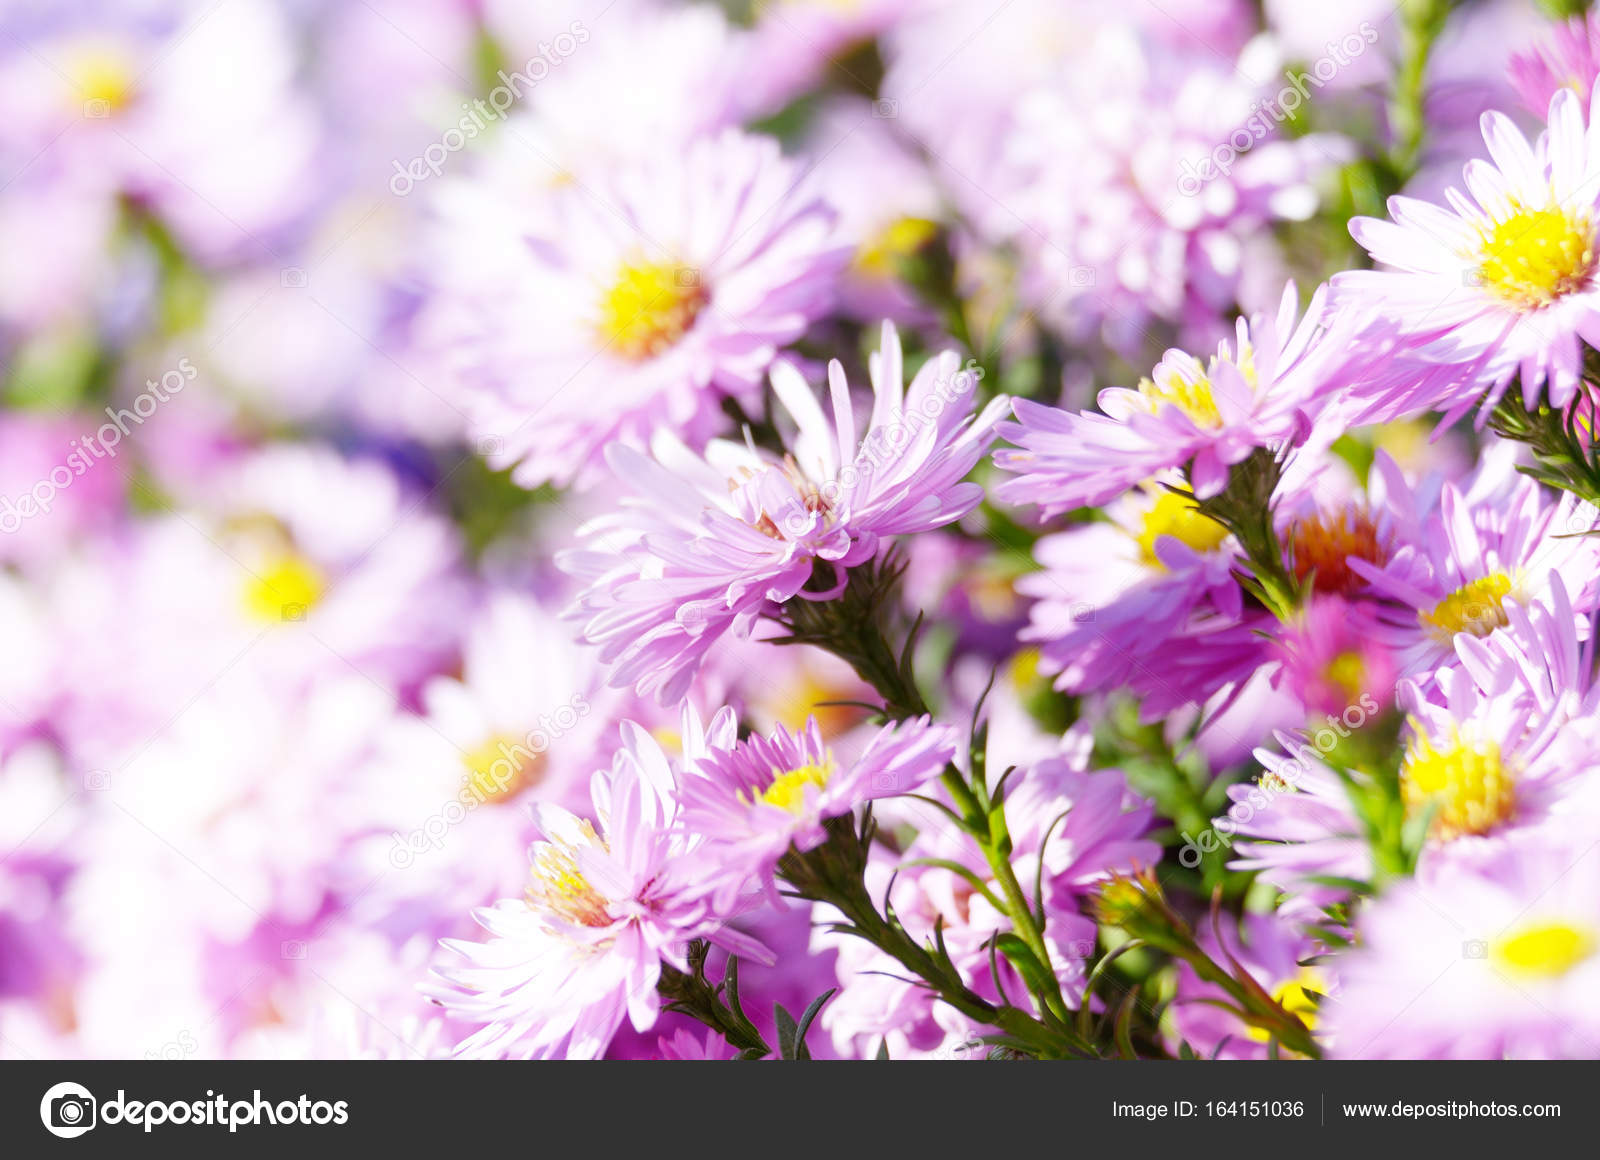 Herbstblumen Bilder Kostenlos Violet Asters Flowers Stock Photo E Mikh 164151036